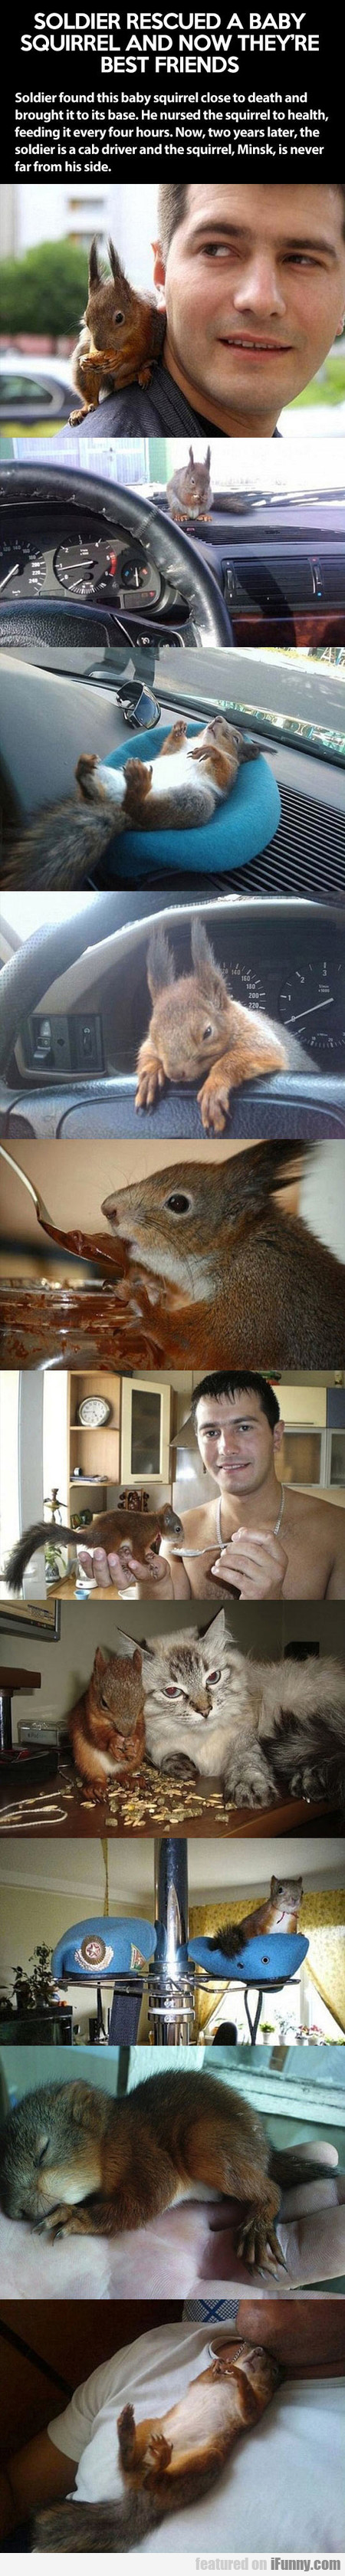 Soldier Rescued A Baby Squirrel And...